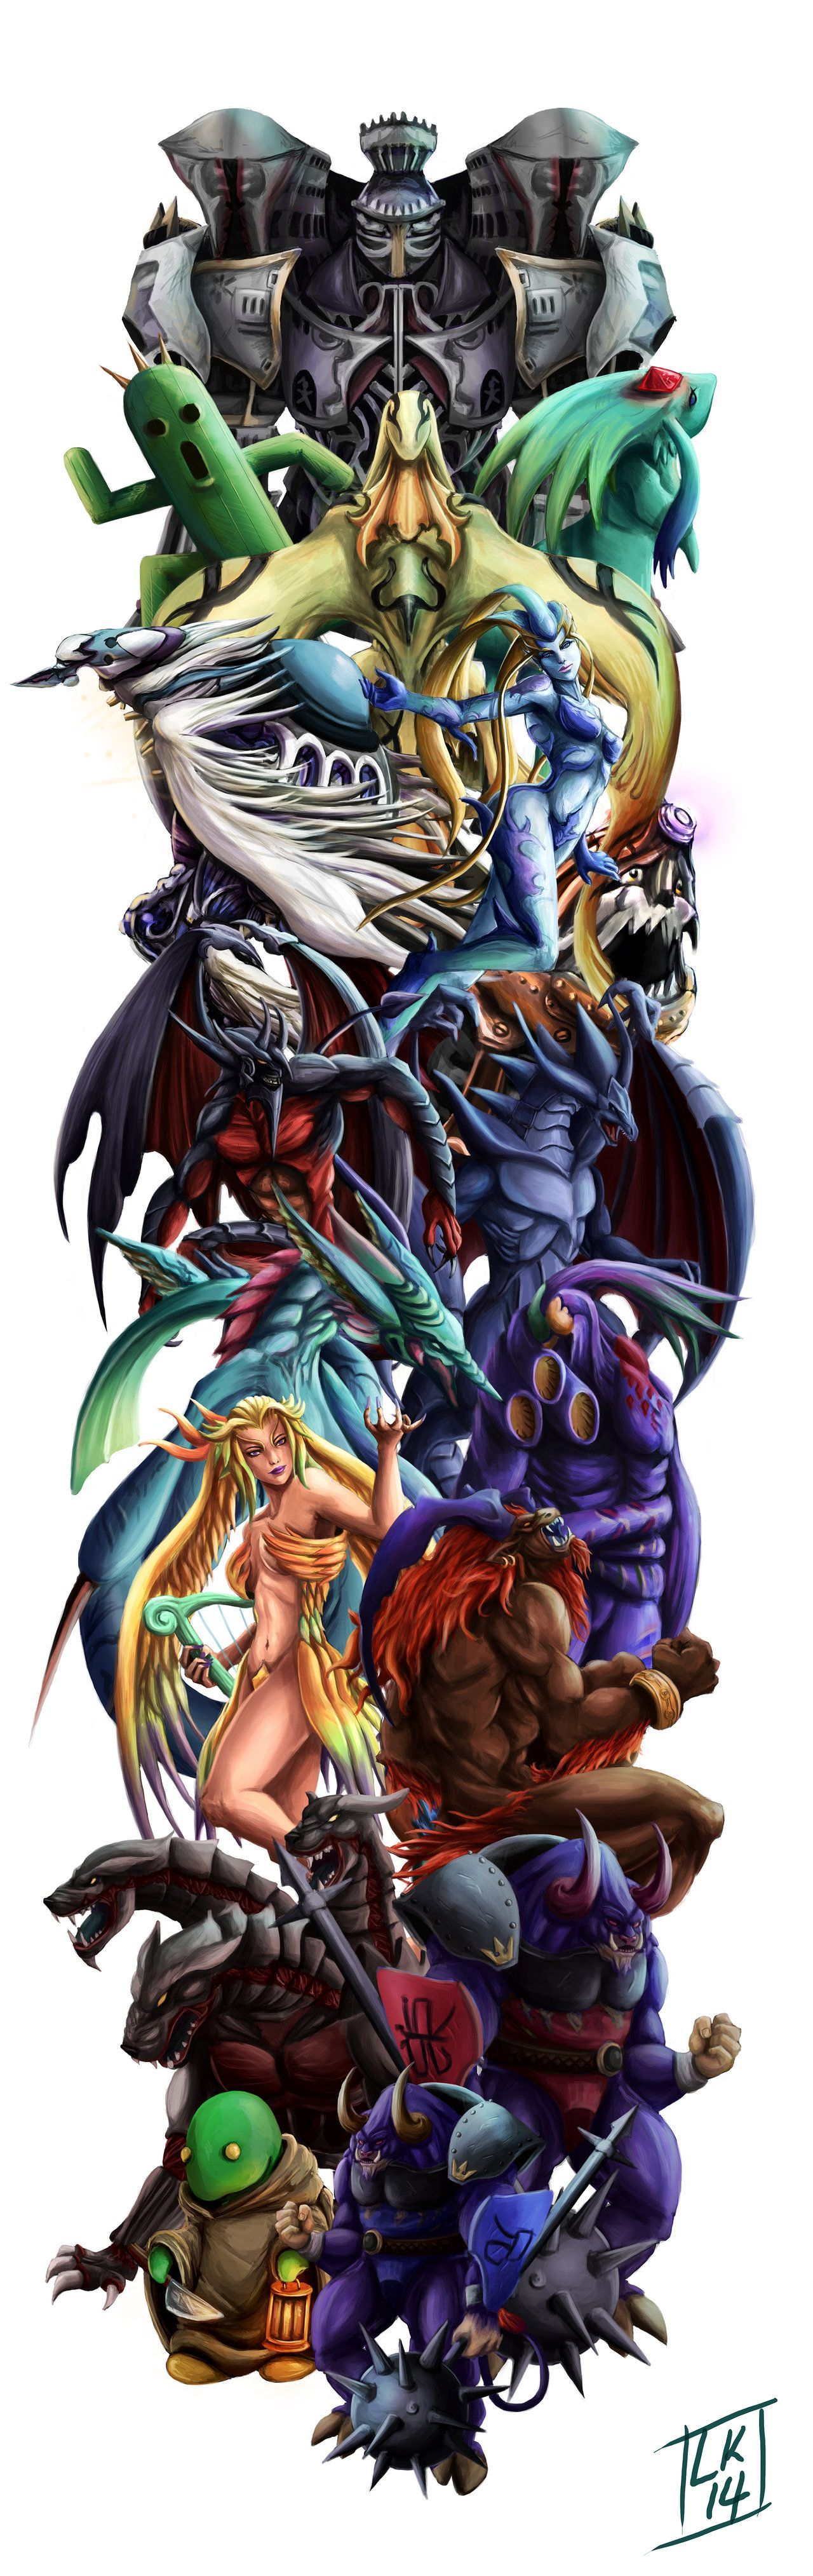 Final Fantasy VIII GF Guardian Forces by LornaKelleherArt